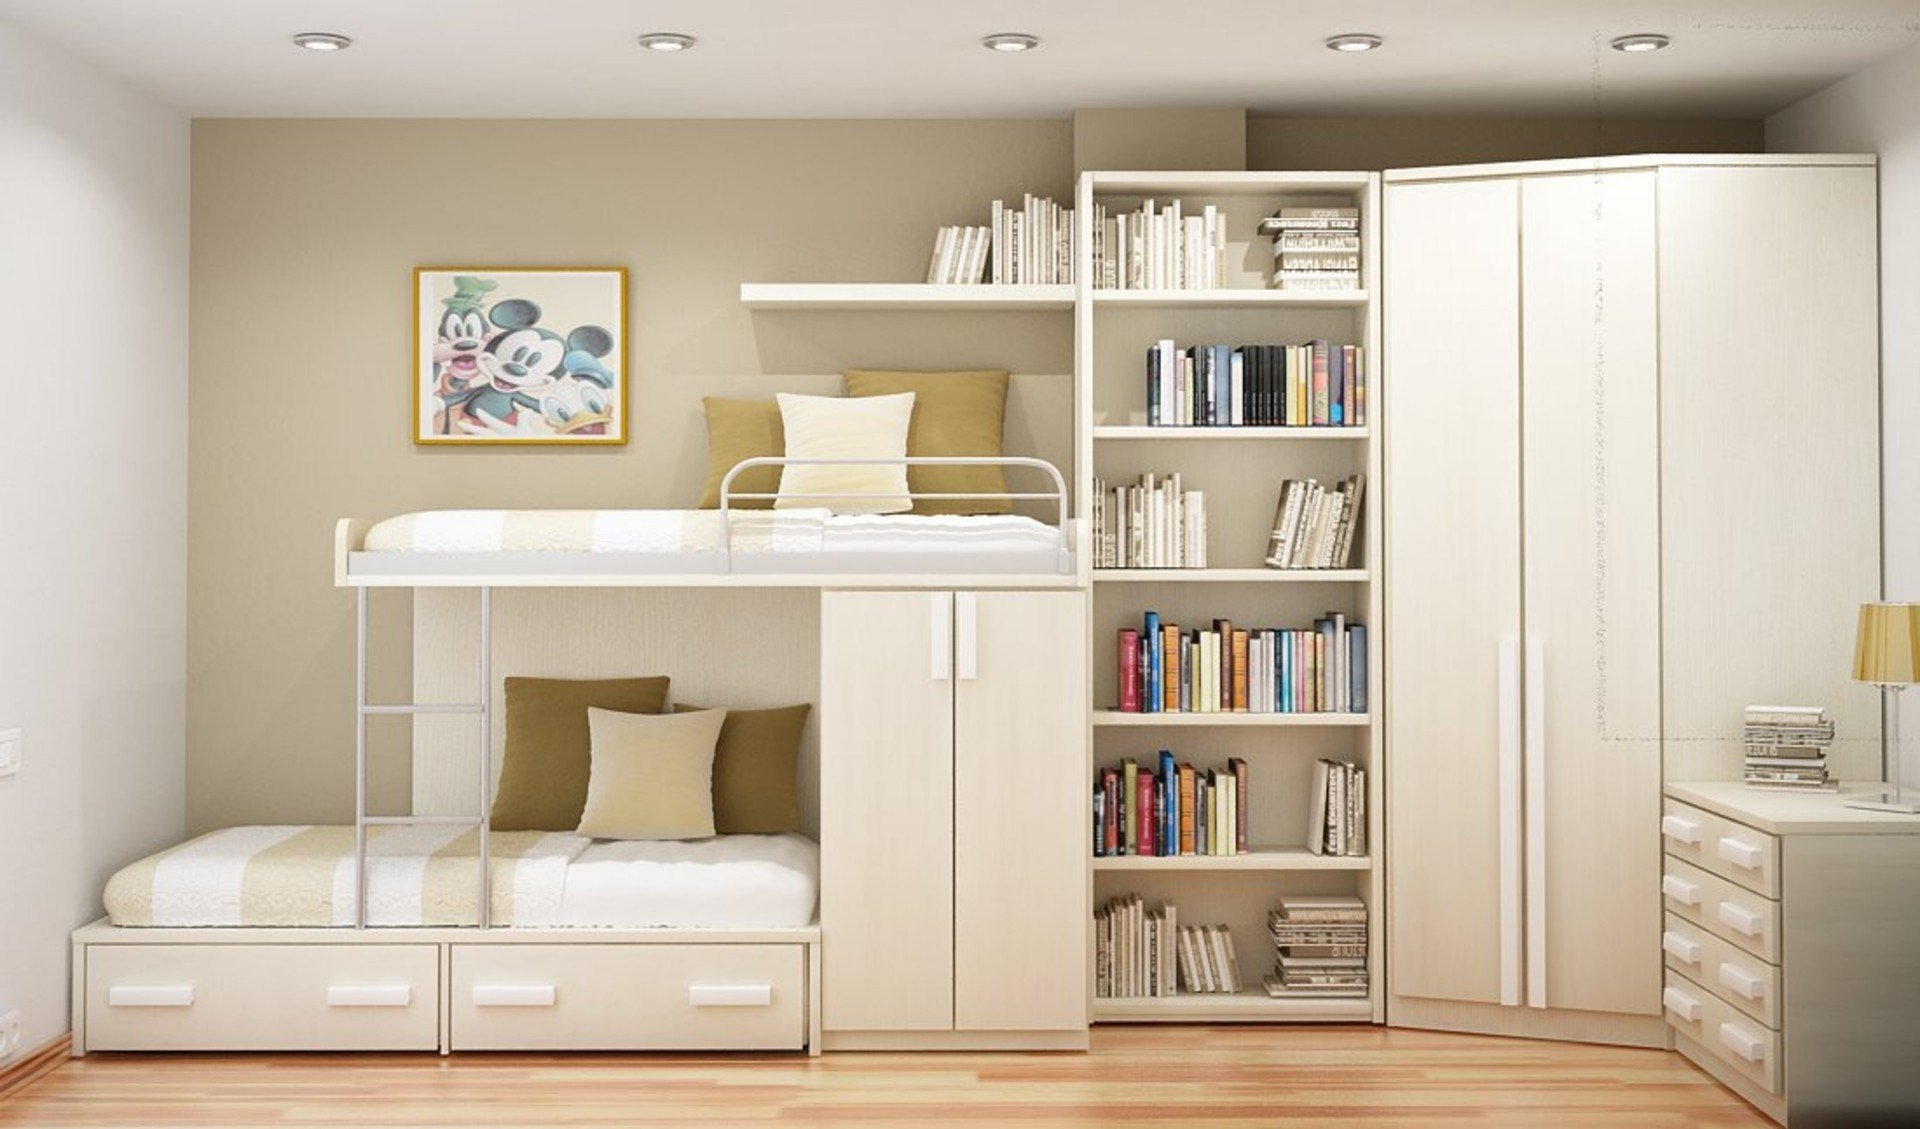 Best 12 Space Saving Furniture Ideas For Kids Rooms Interior Design Inspirations With Pictures